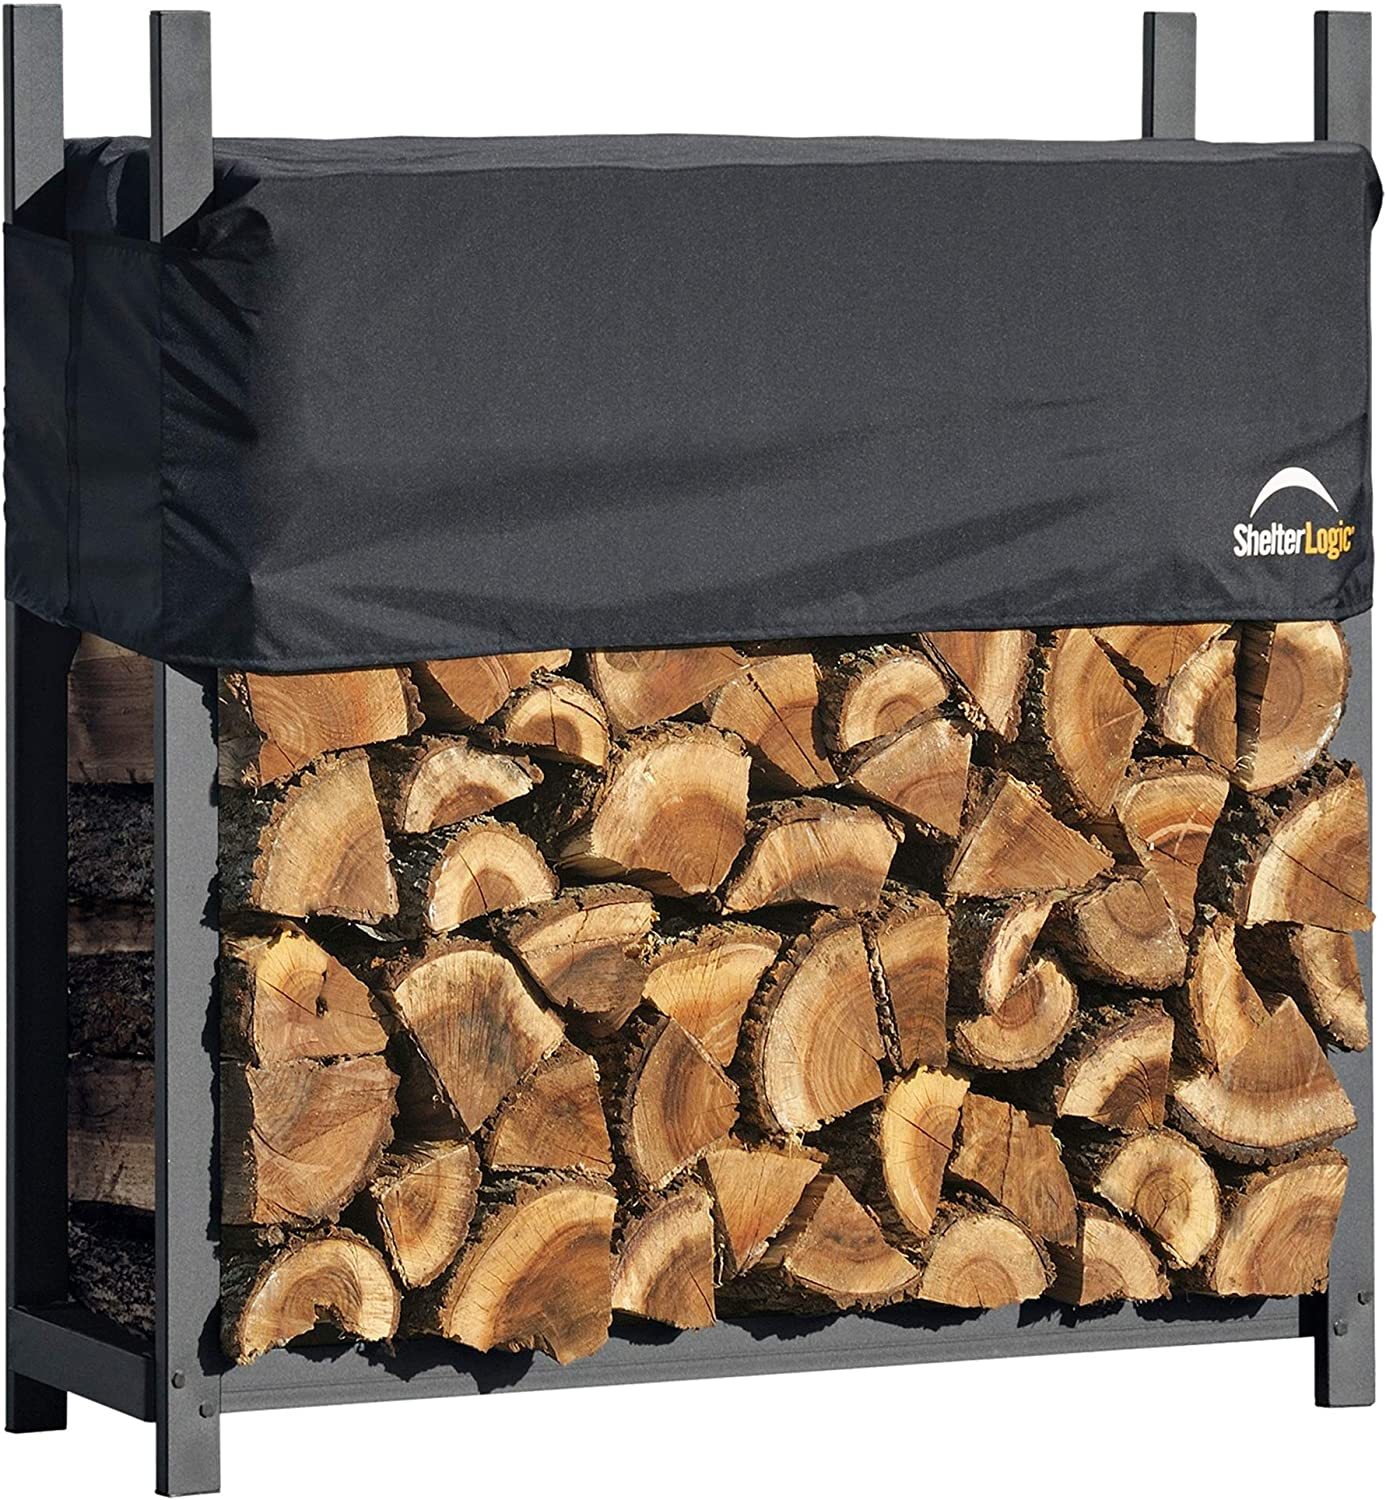 ShelterLogic 4 Ultra-Duty Firewood Rack-in-a-Box Wood Storage with Premium Steel Frame and Adjustable Water-Resistant Cover